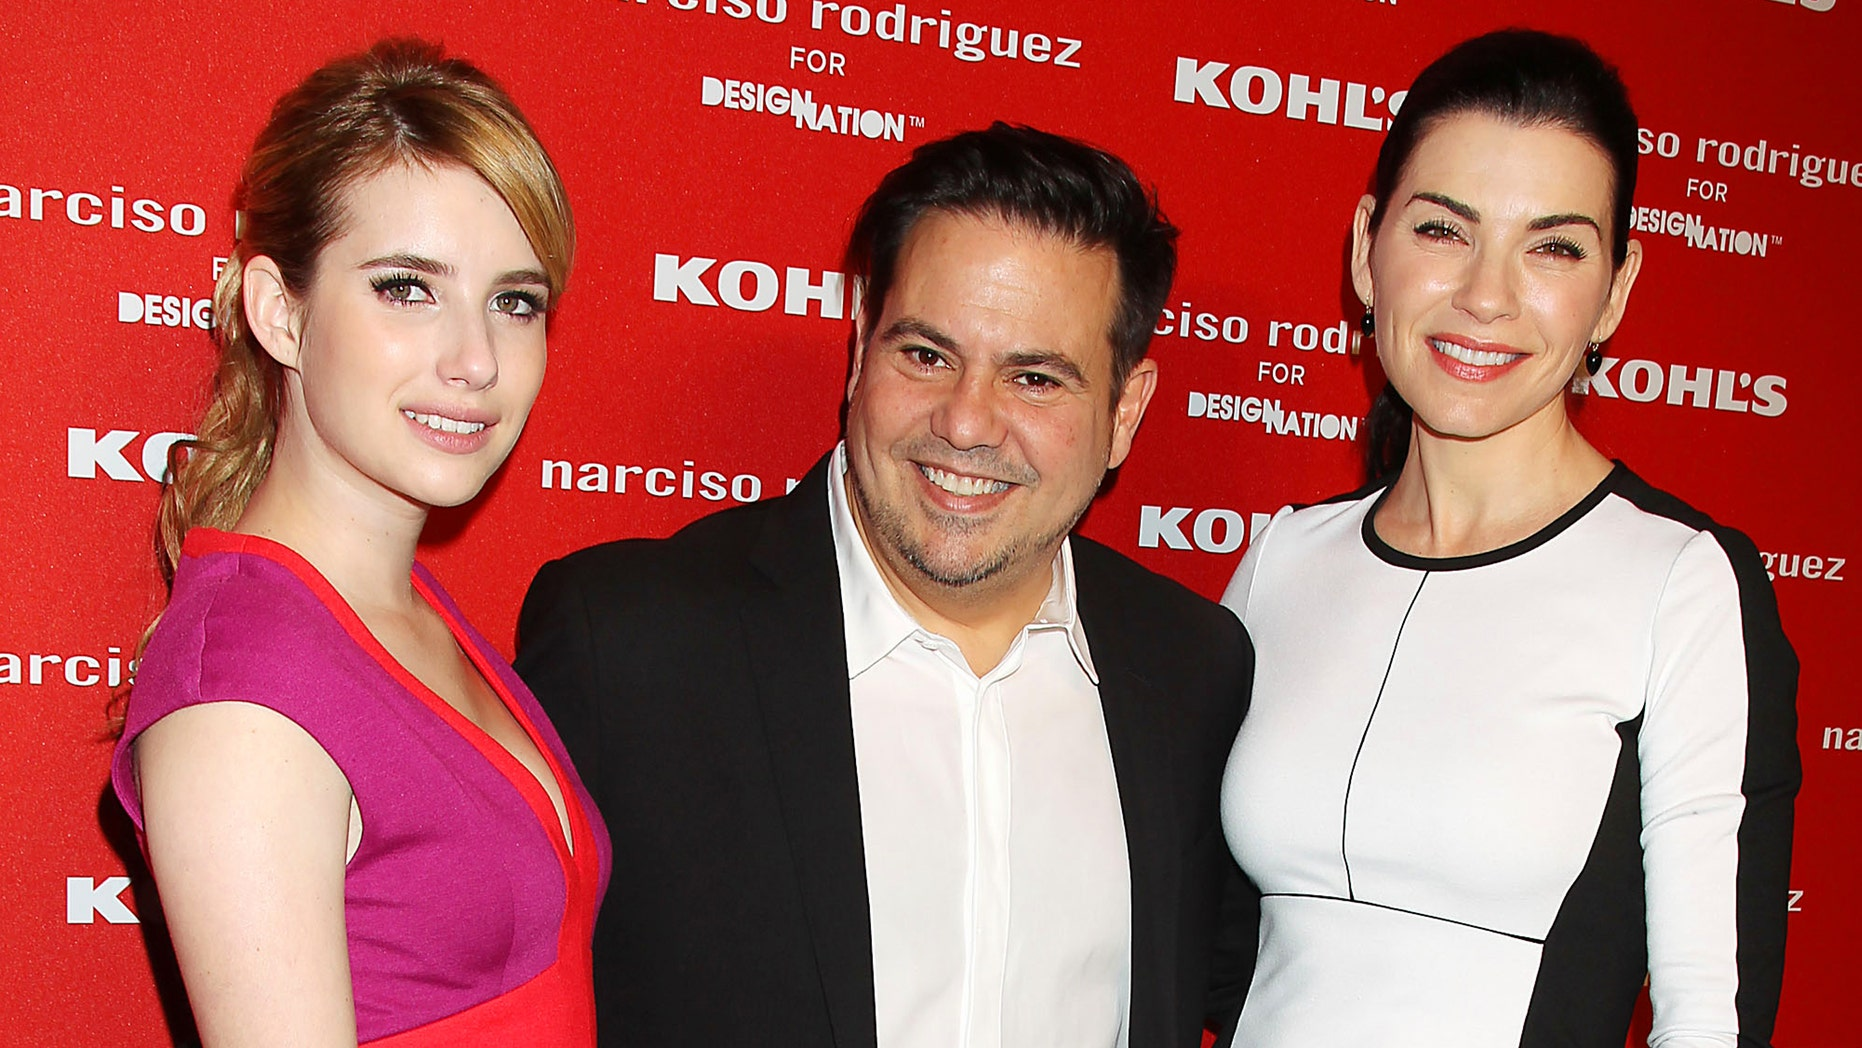 This Oct. 22, 2012 photo released by Starpix shows actress Emma Roberts , left, with fashion designer Narciso Roriguez, center and actress Julianna Margulies at the Narciso Rodriguez for DesigNation launch in partnership with Kohl's department store in New York. Rodriguez has joined the likes of Jason Wu and Missoni by launching a limited-edition collection with a more affordable national retailer. (AP Photo/Starpix, Dave Allocca)